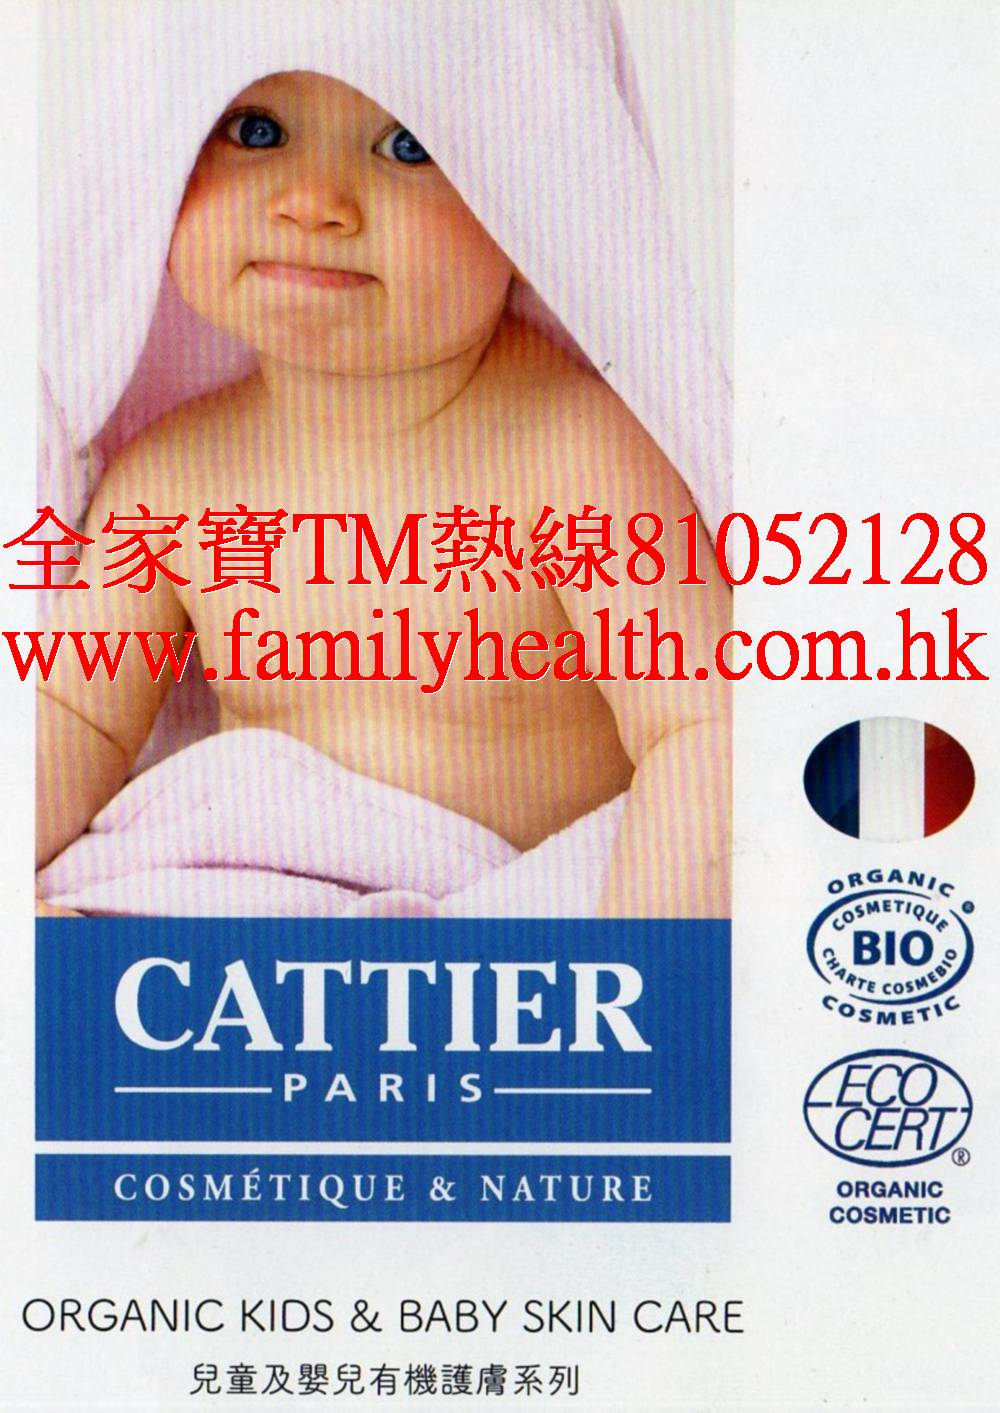 http://www.familyhealth.com.hk/files/full/902_0.jpg